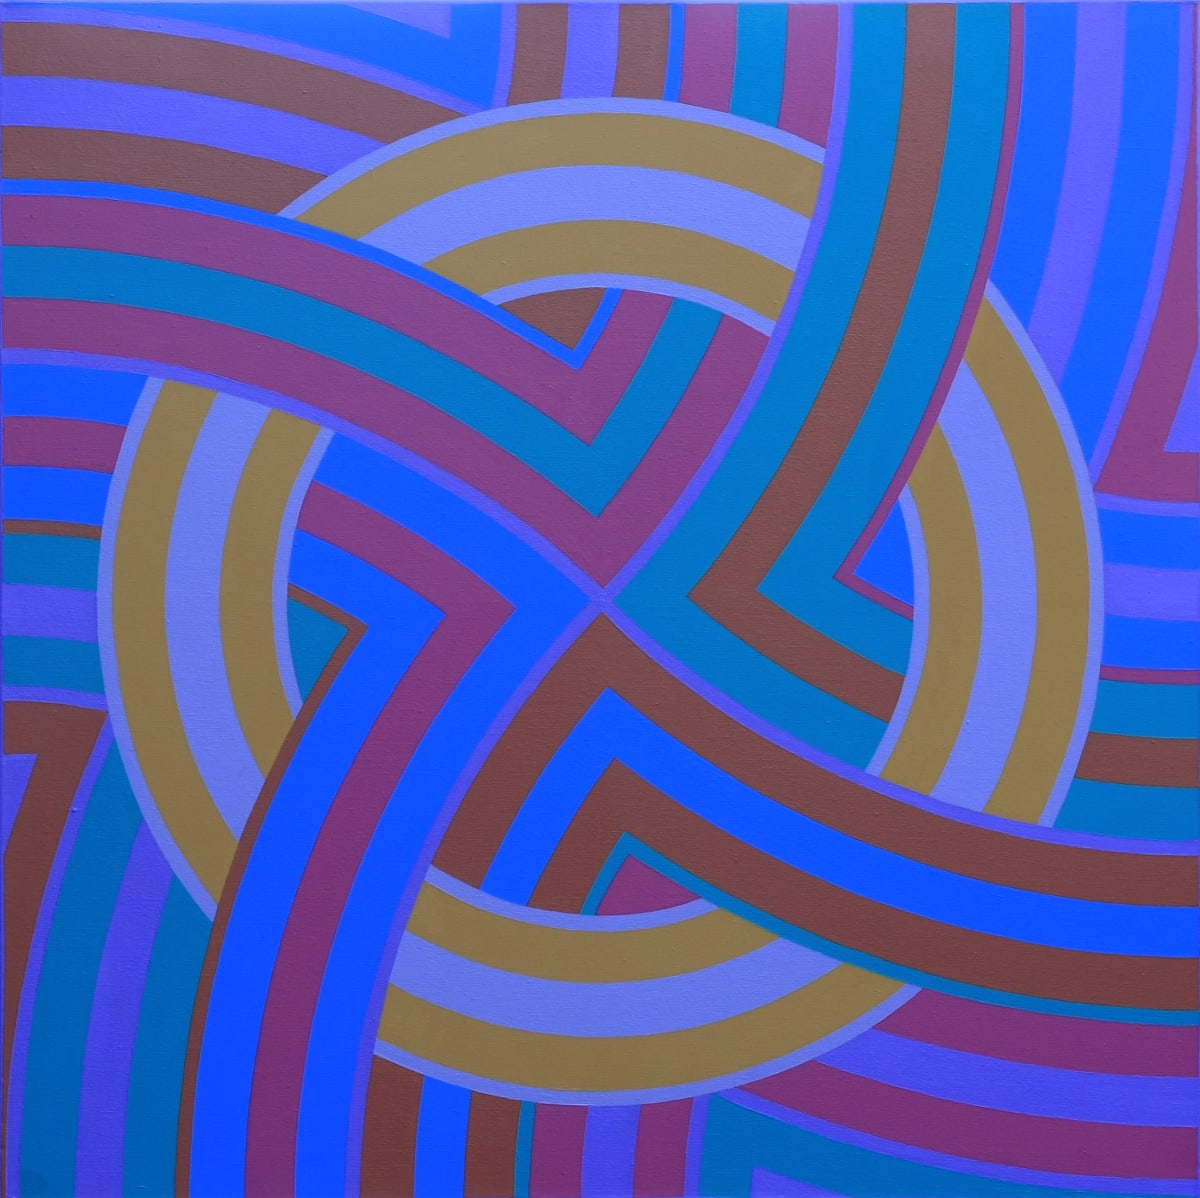 ROY OSBORNE Circular Forms XI (Compass series), 2008-10 oil on canvas 76 x 76 cm 30 x 30 in signed and dated